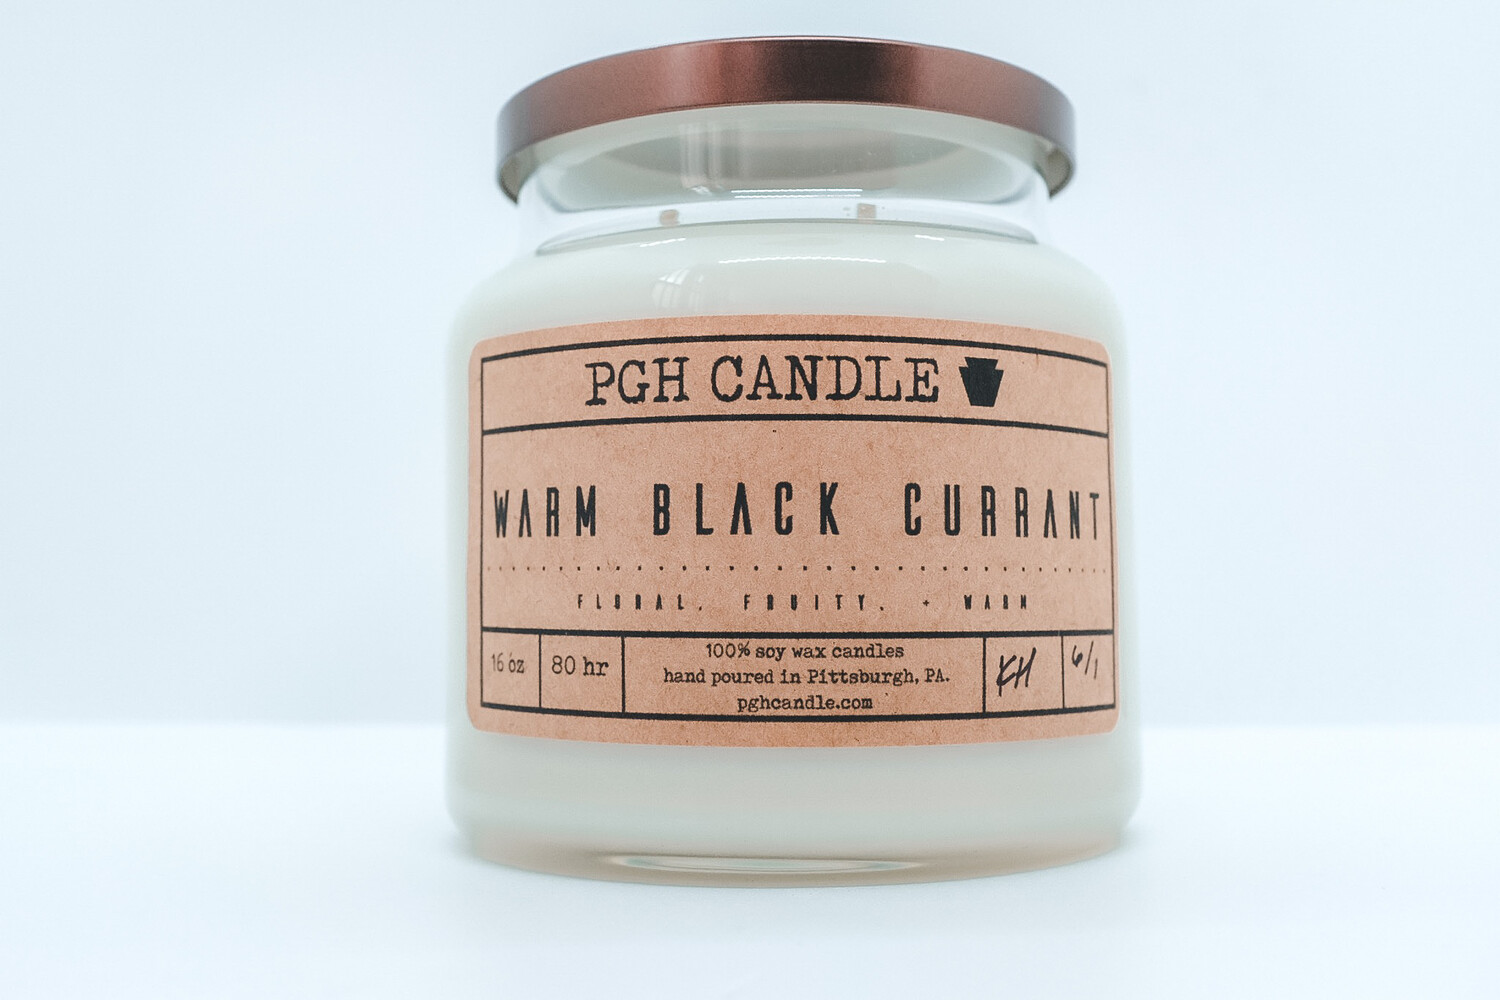 Warm Black Currant Soy Candle (2 Sizes)